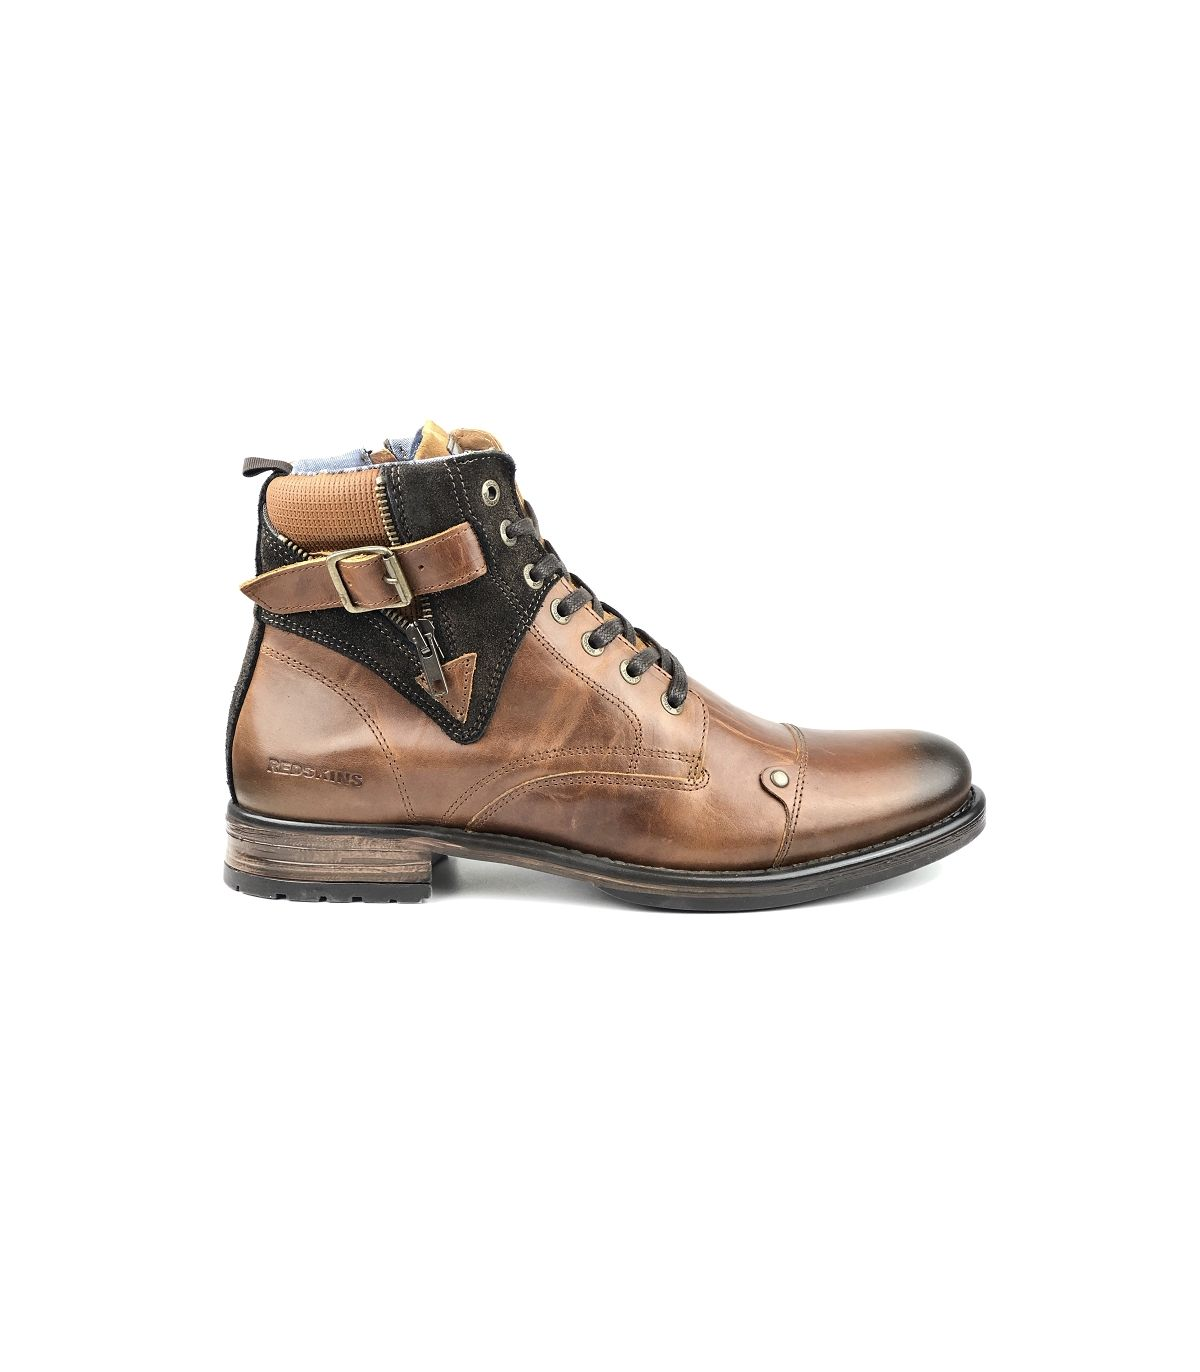 Chaussures CognacUnivers Cuir Chaussures Redskins Homme uwOXZiklPT